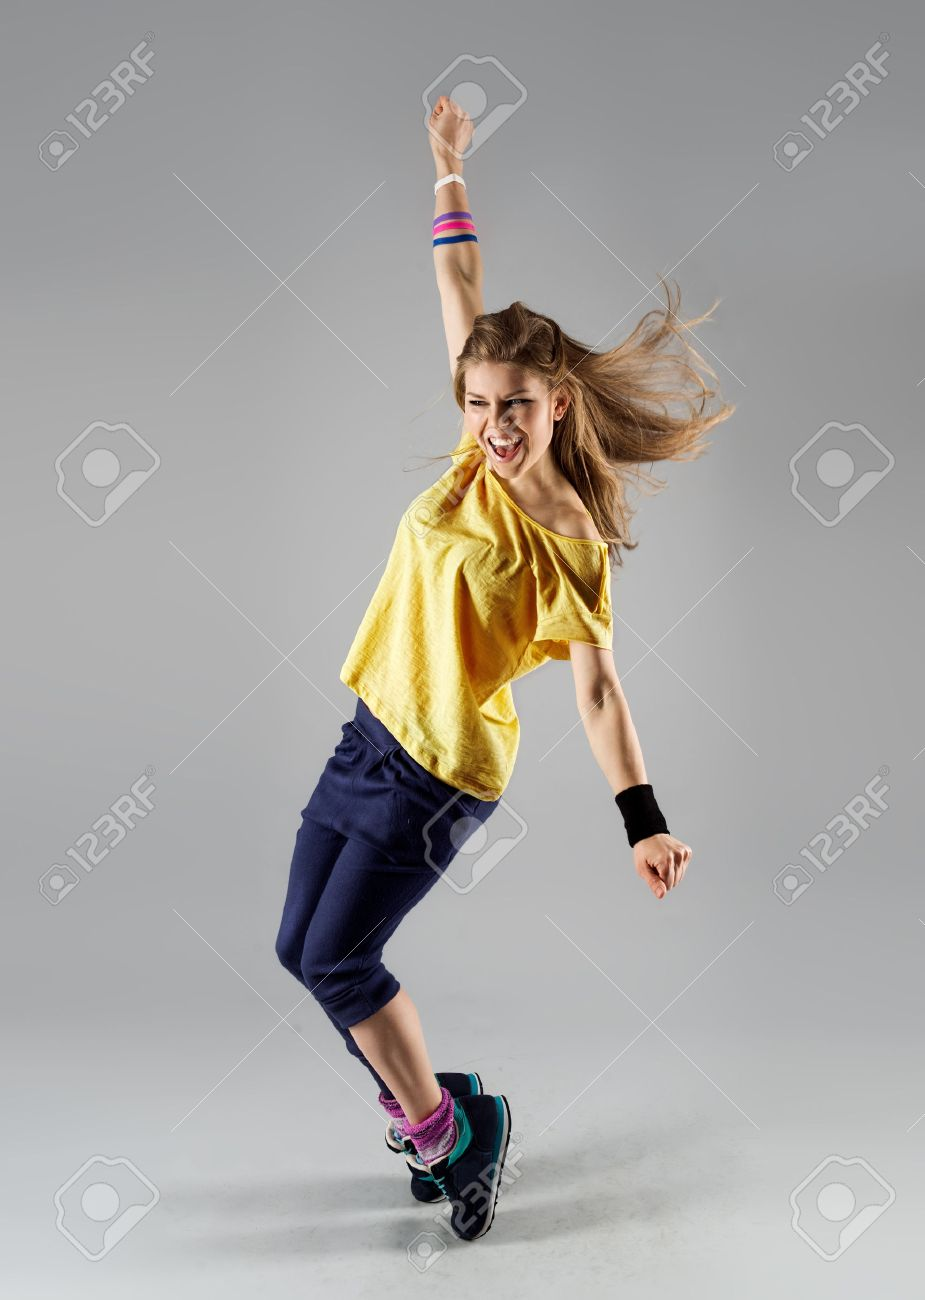 Energetic dancing woman screaming doing dance fitness exercise. Young beautiful jazz girl in motion. - 39304085